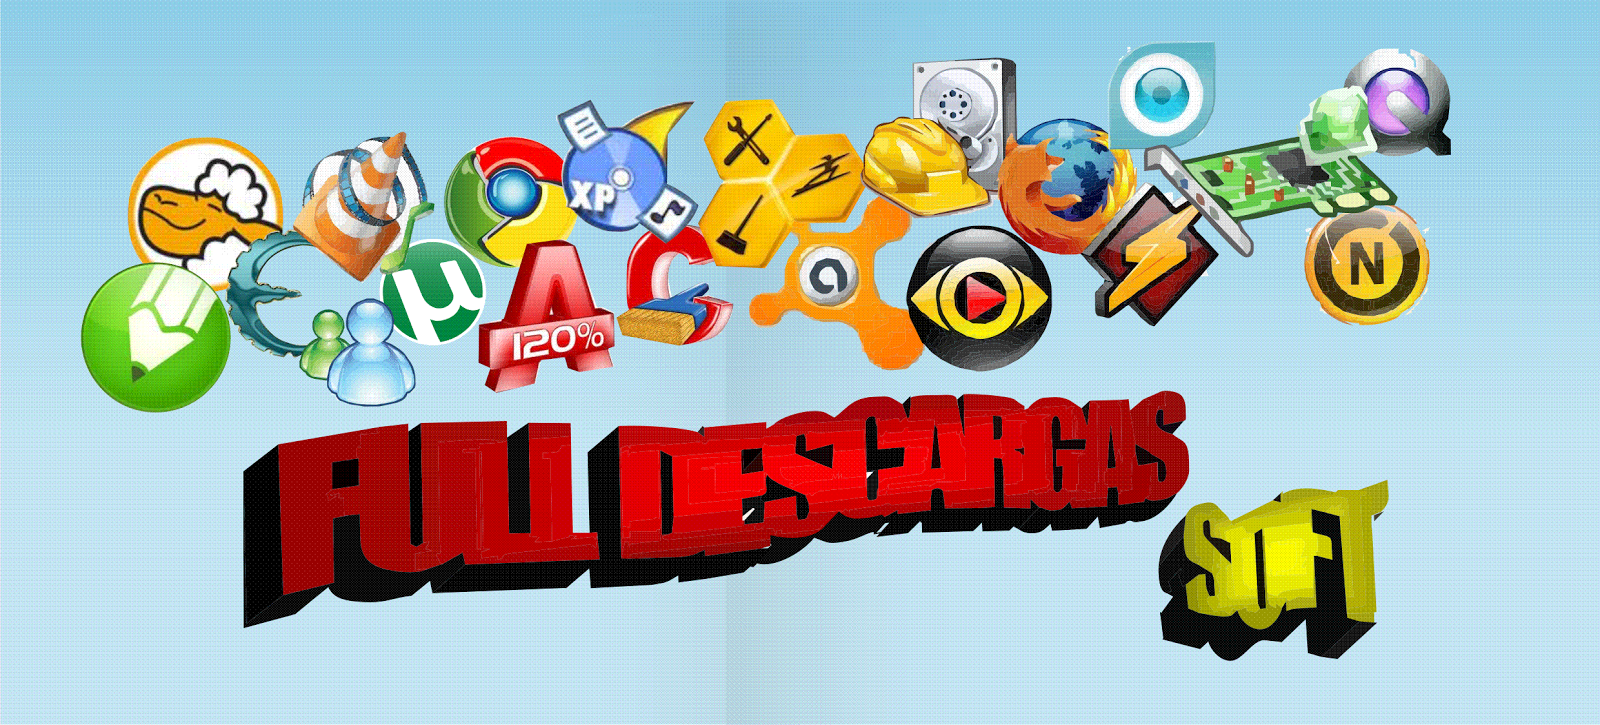 full descargas soft